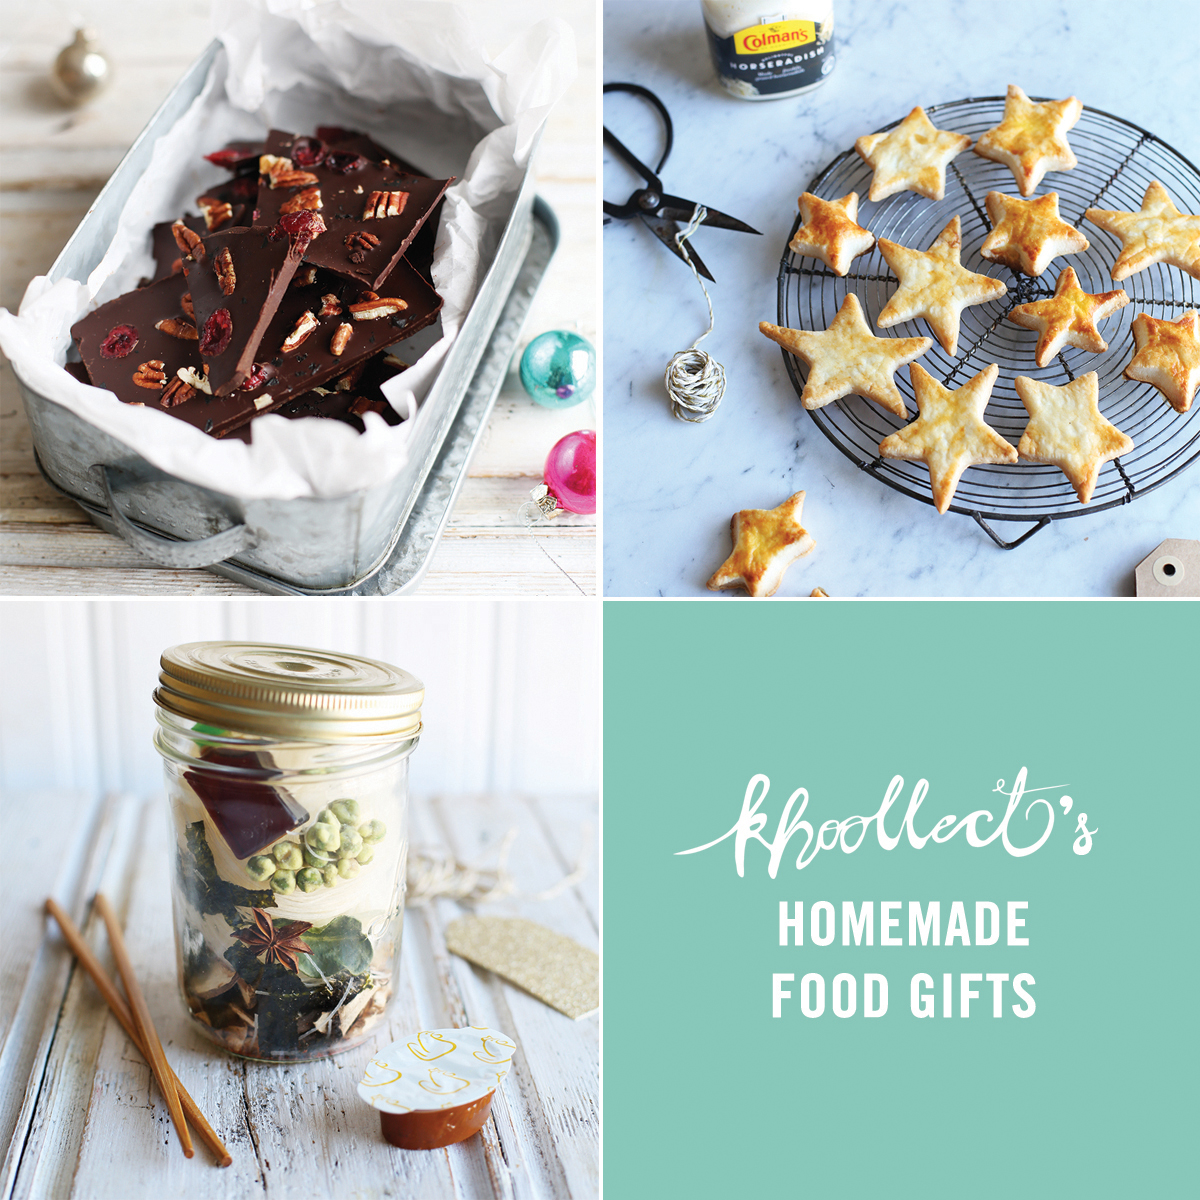 Khoollect Tips: Creating Thoughtful Homemade Food Gifts